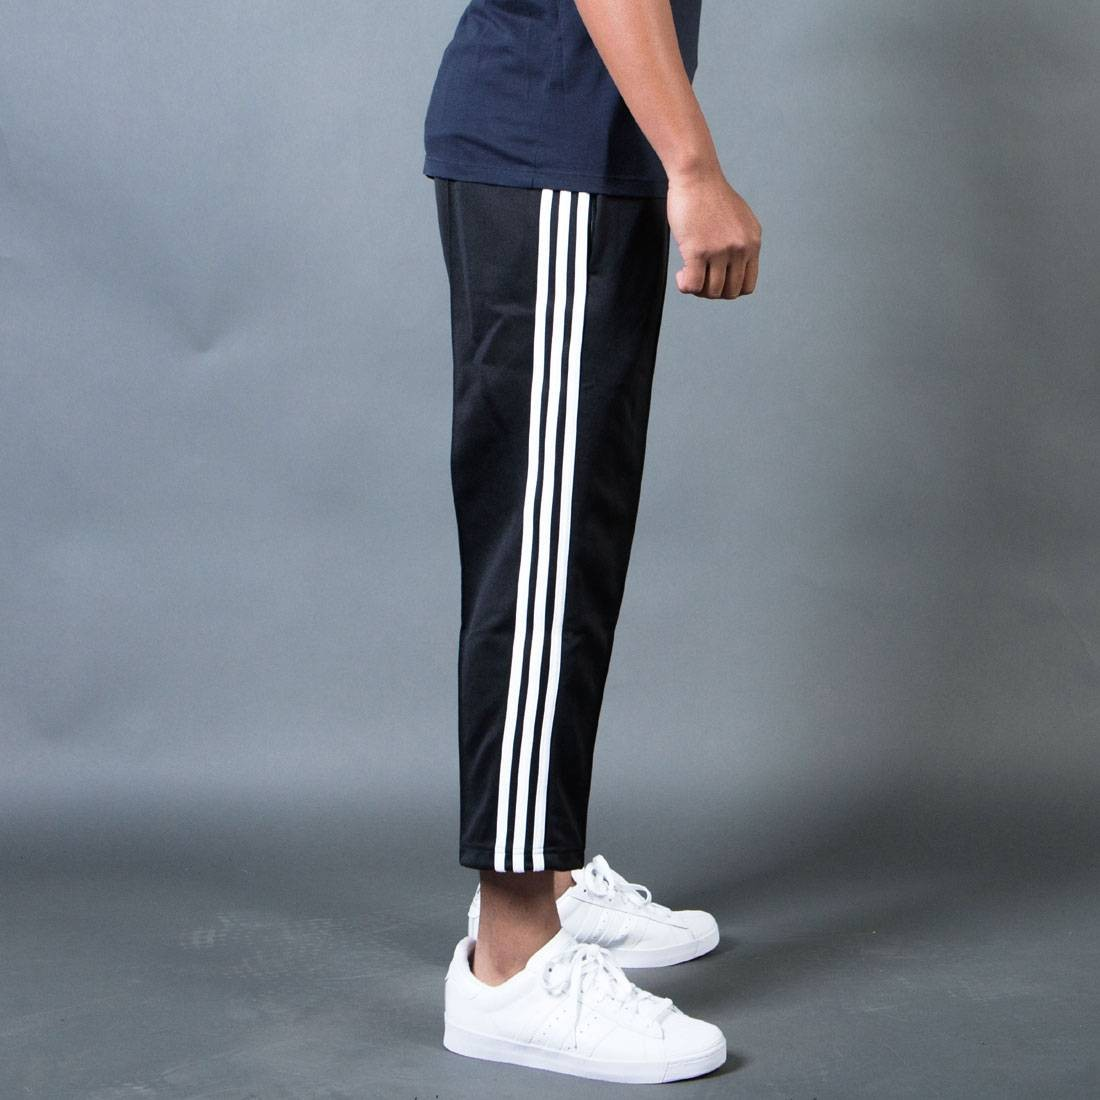 White Superstar Pantsblack Relaxed Cropped Track Men Adidas lJ5TK3Fu1c